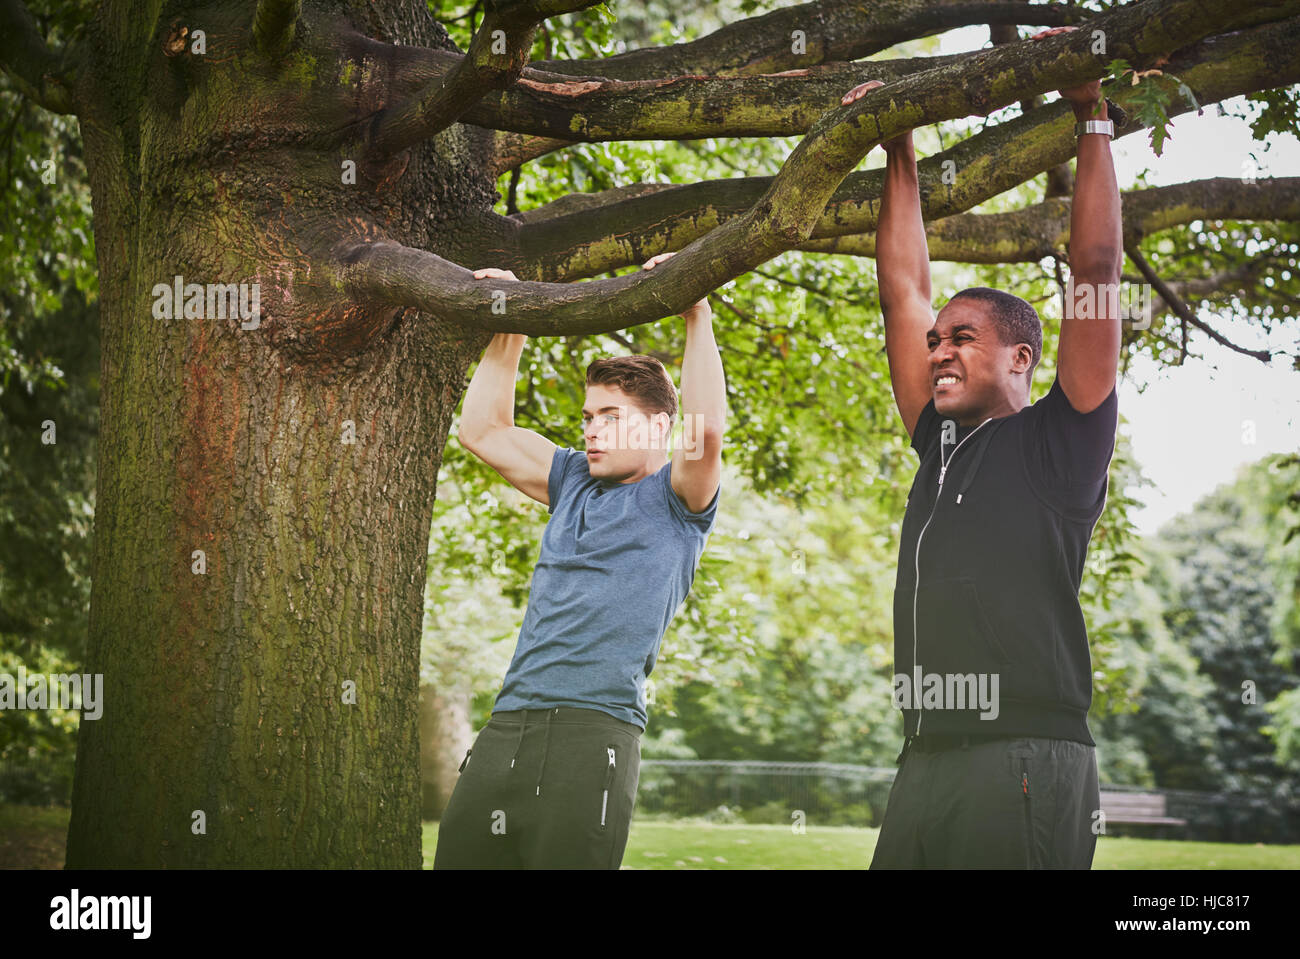 Personal trainer and young man doing pull ups using park tree branch - Stock Image